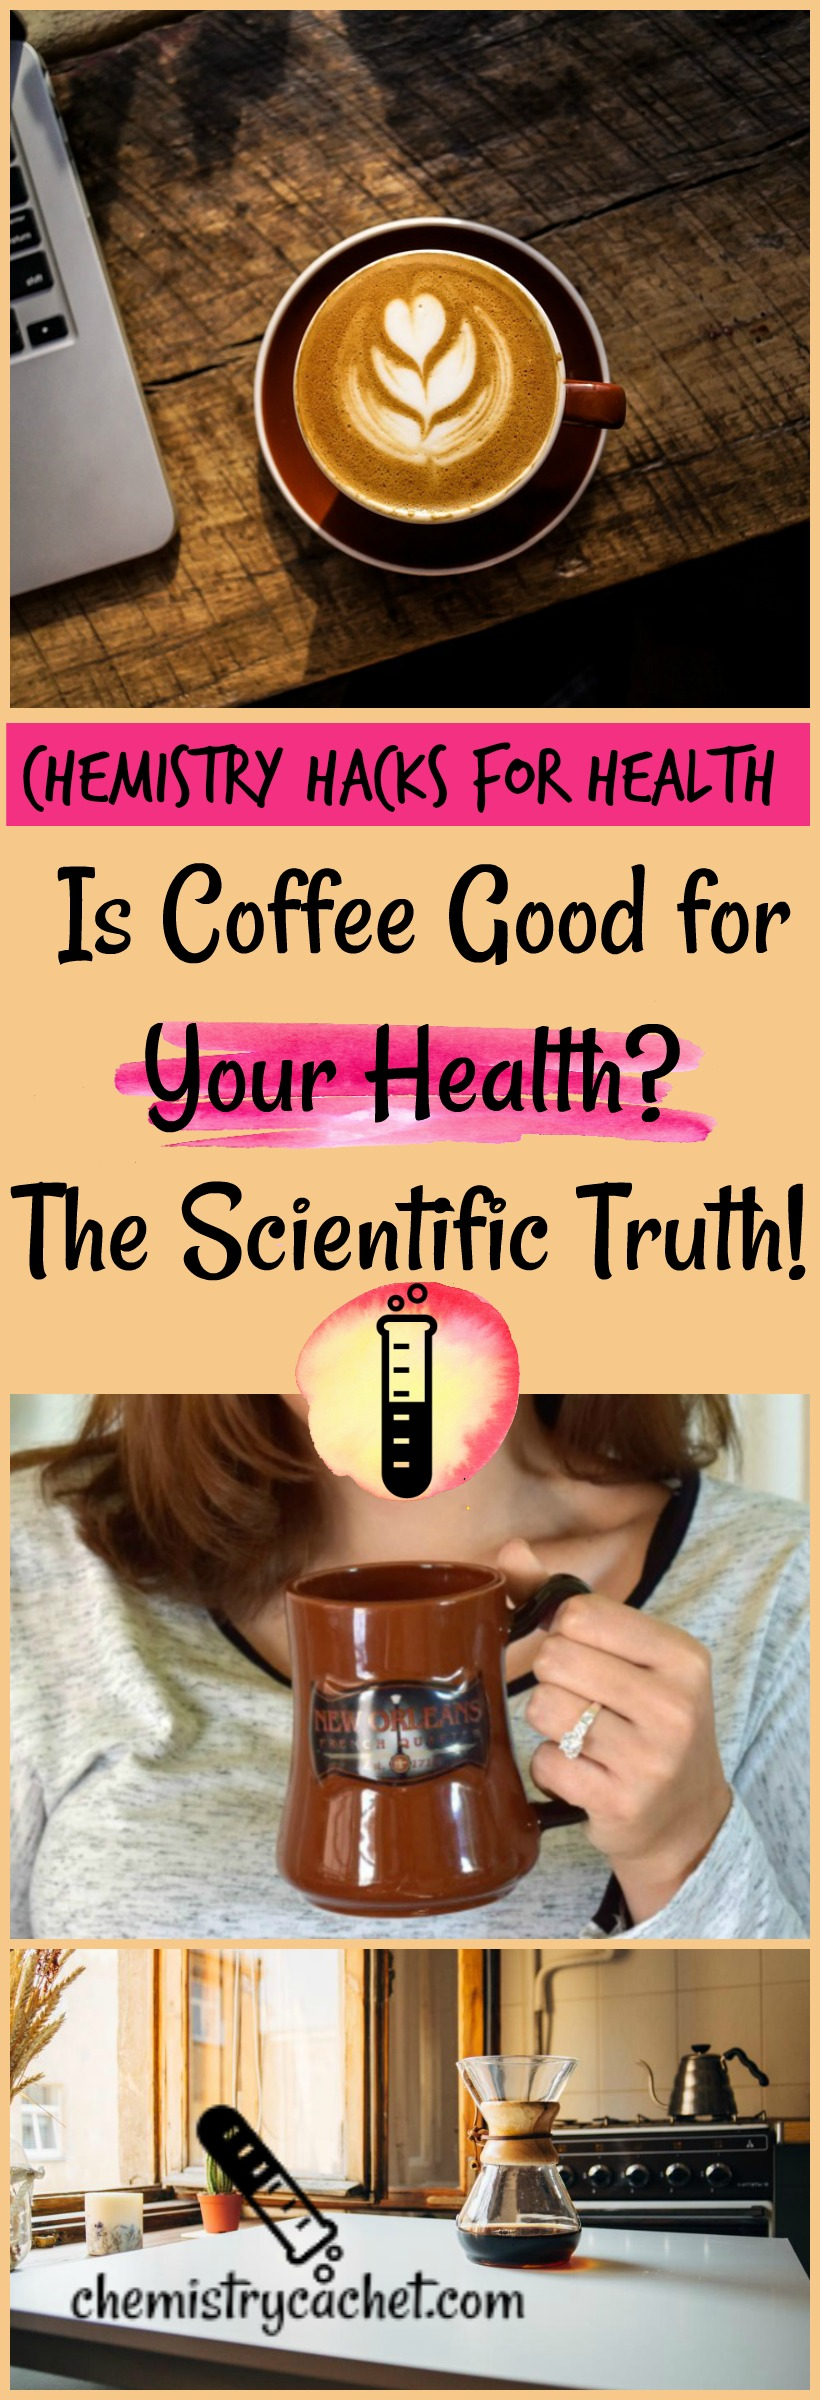 Chemistry Hacks for Health Is Coffee Good for Your Health The Scientific Truth! on chemistrycachet.com